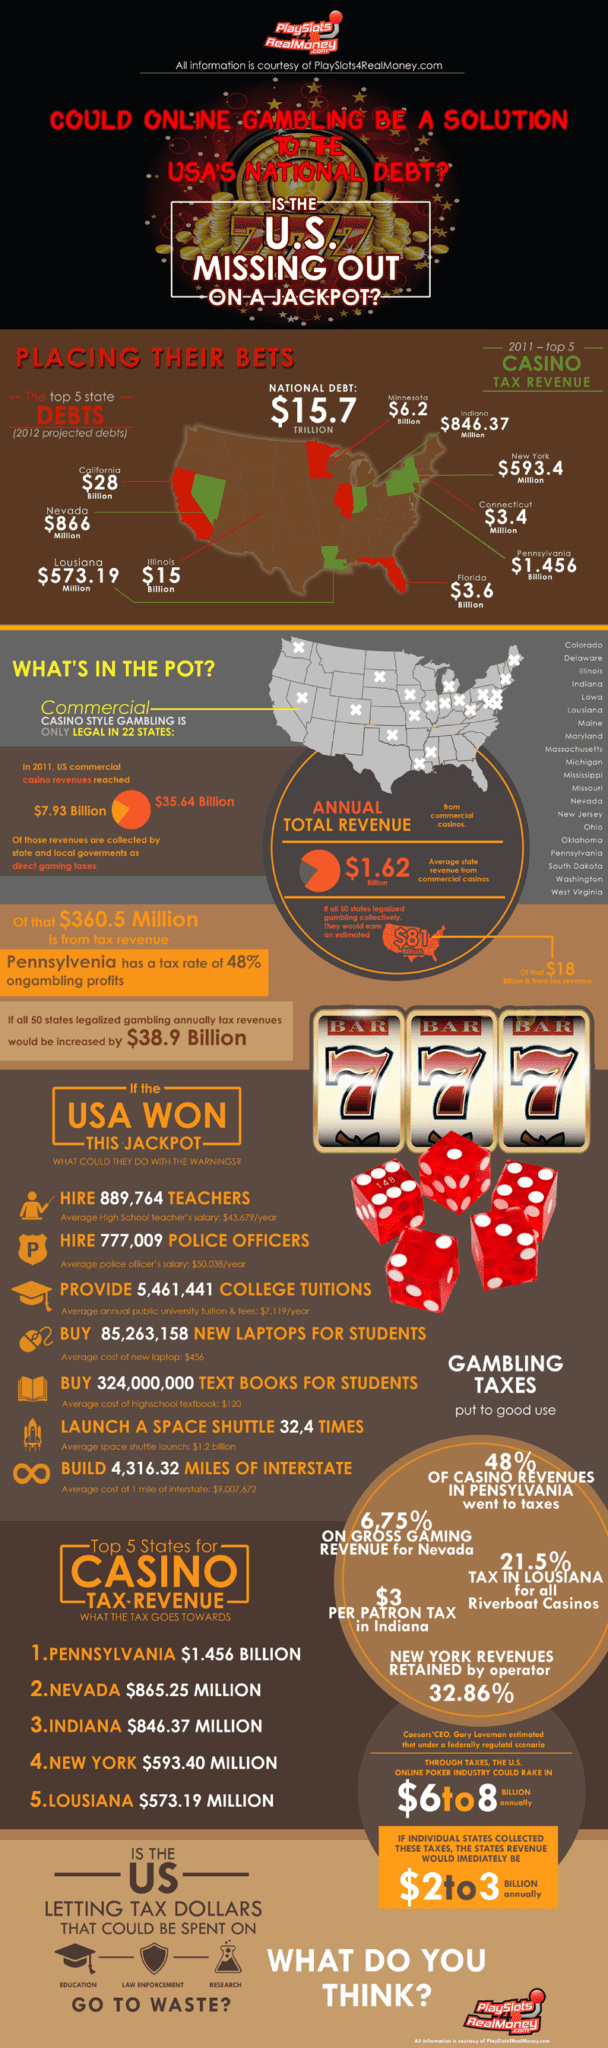 best online casino for usa players